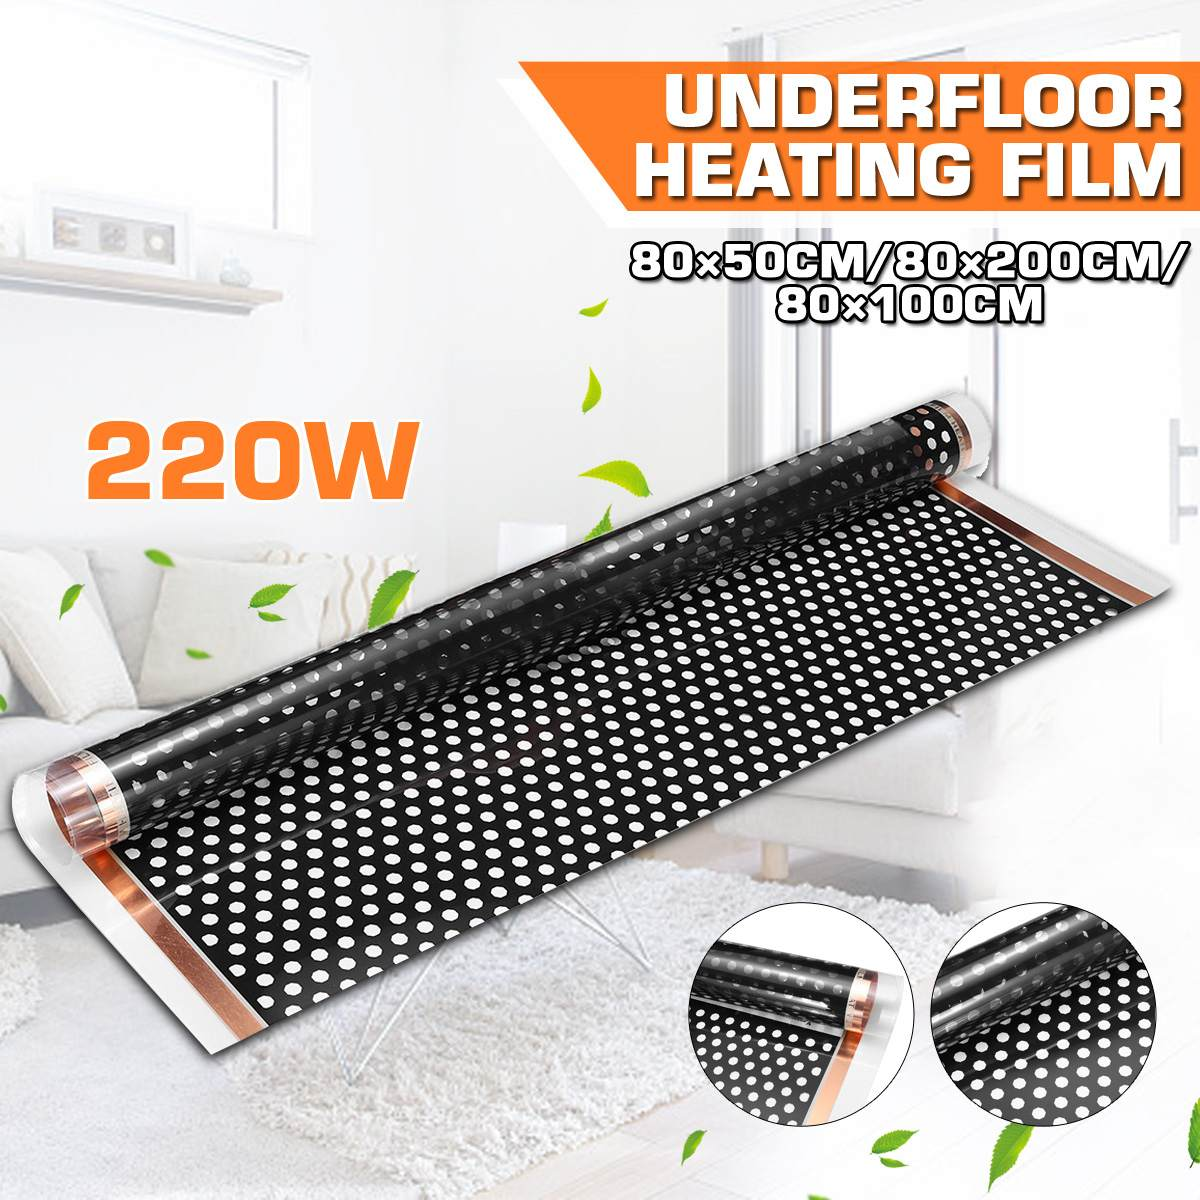 80x200cm 220W Electric Heating Mat Underfloor Heating Film Infrared Warm Floor Heating Film Electric High Quality Carbon Fiber